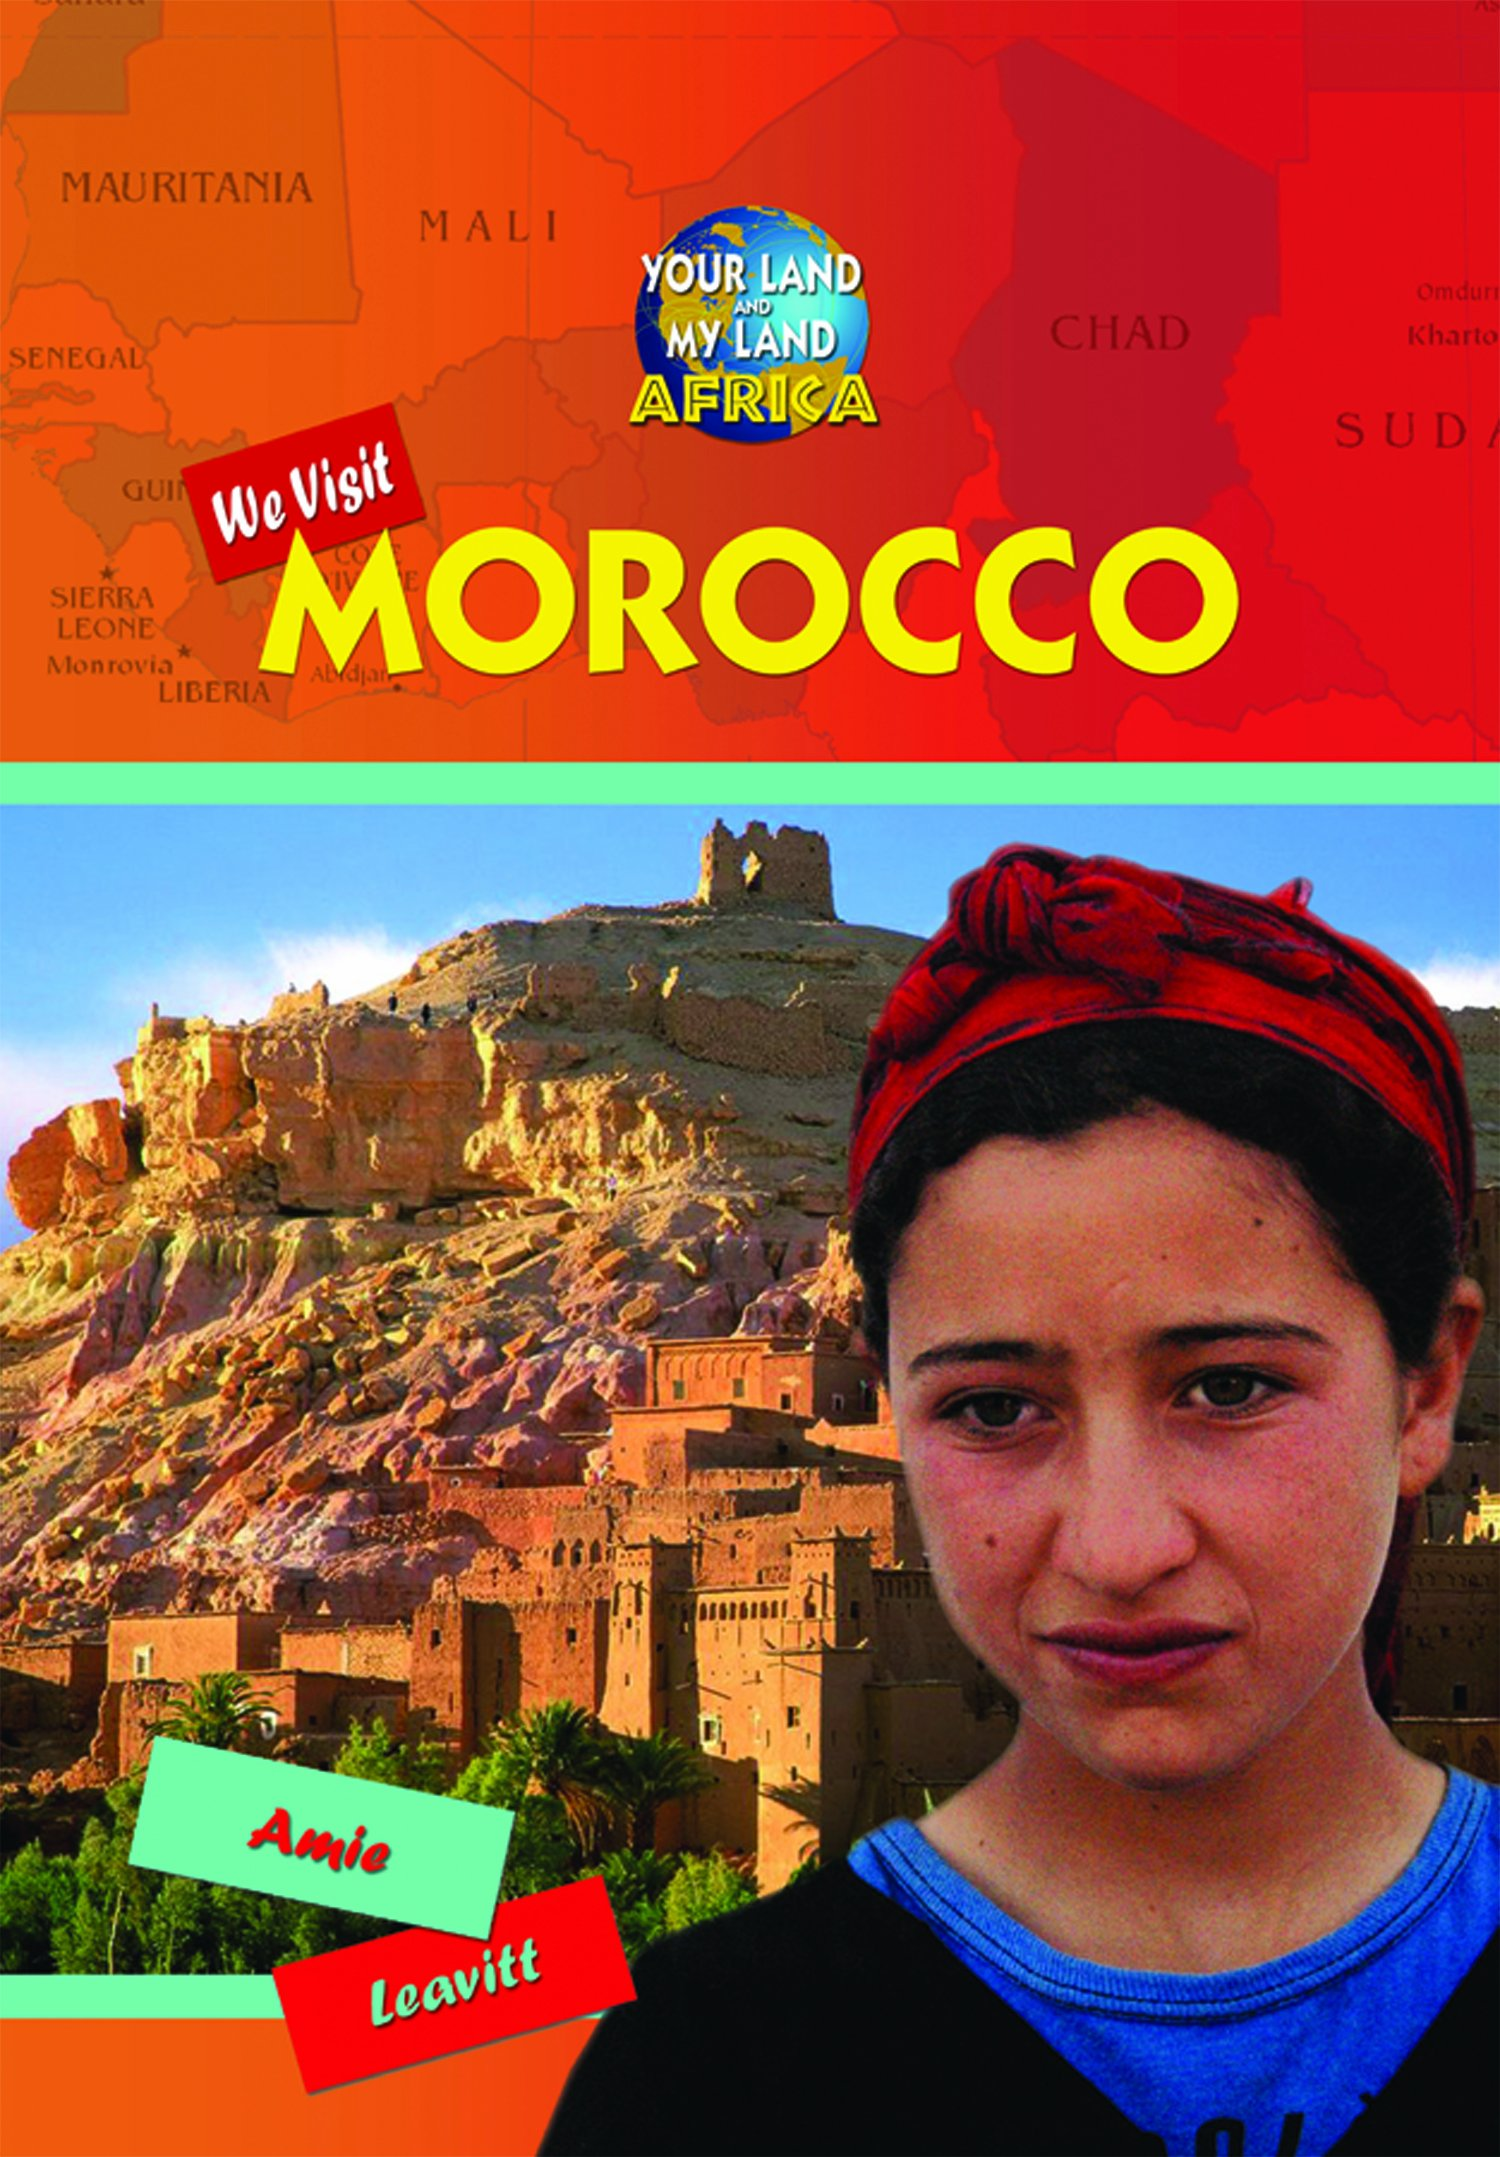 We Visit Morocco (Your Land and My Land: Africa)